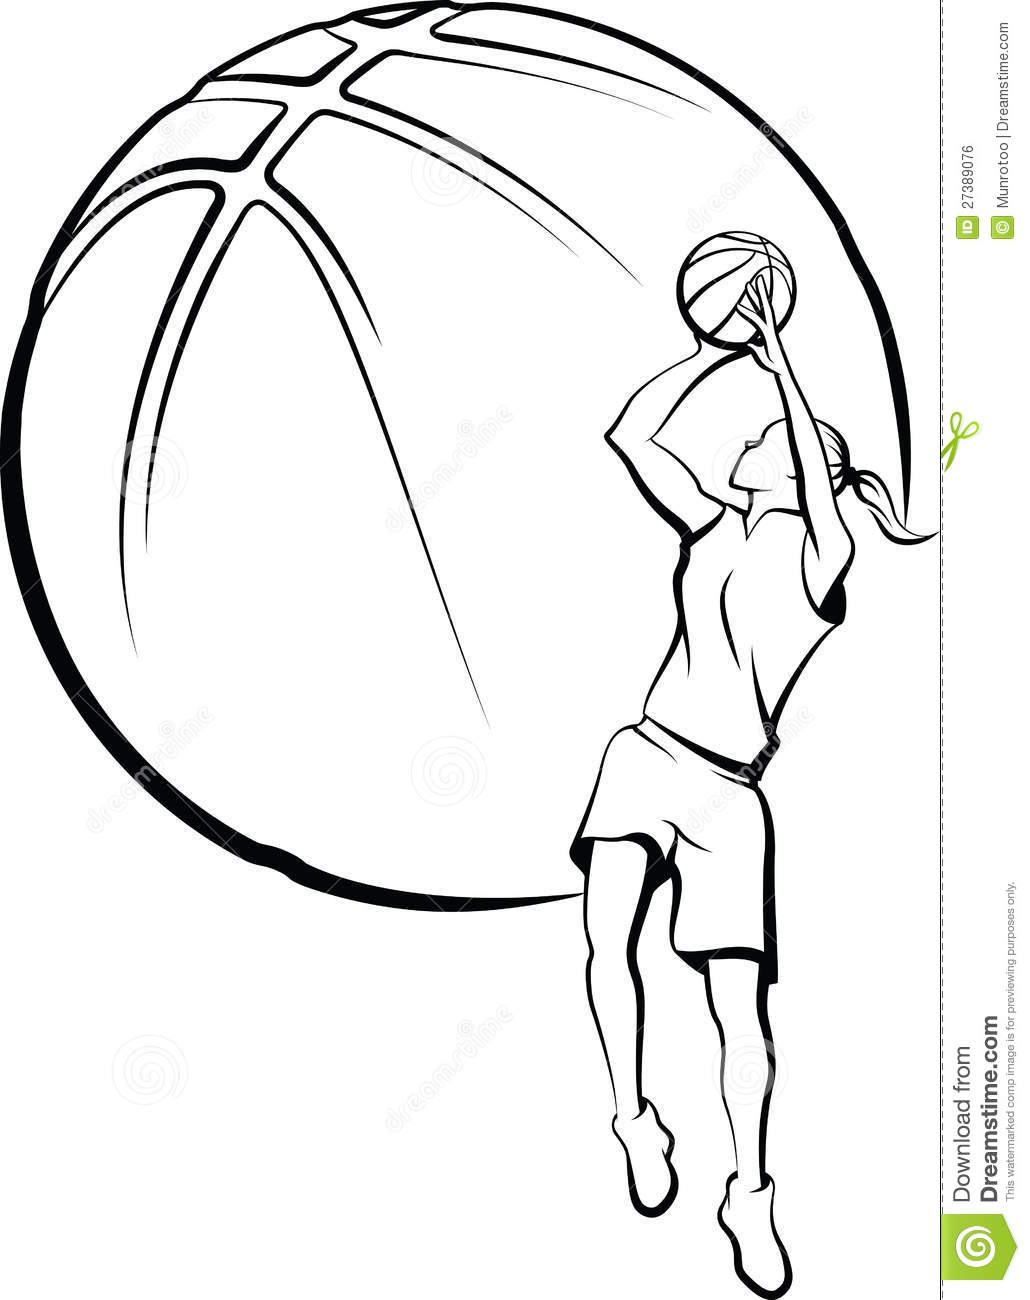 Basketball Player Shooting Clip Art Basketball Player Shooting